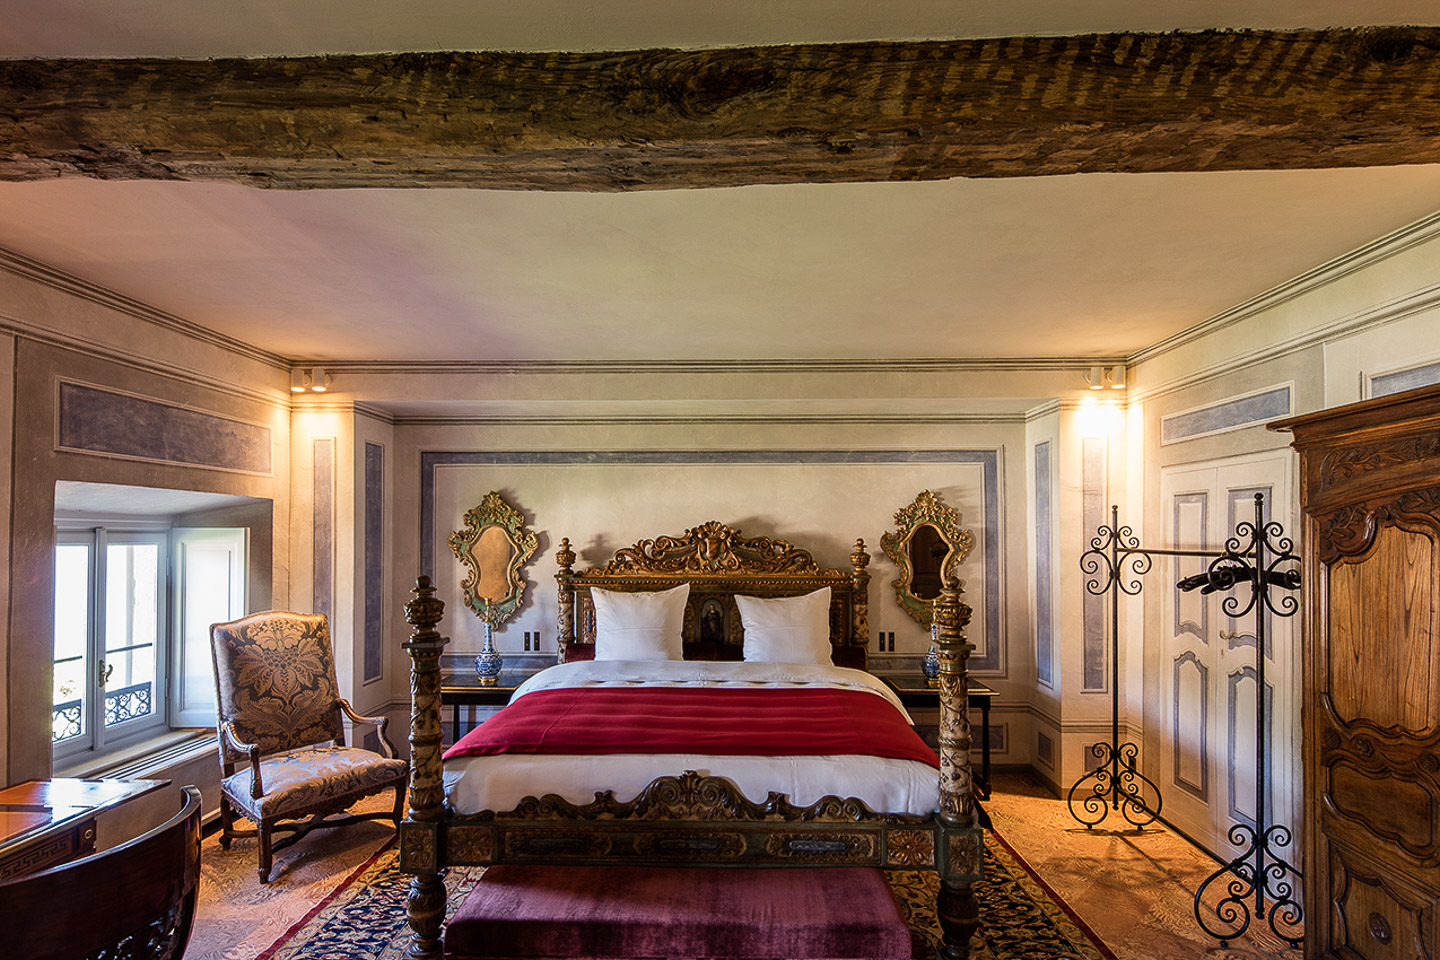 Villa Balbiano luxury property best available for accommodation rental on lake Como guests can spend night opulent luxury suites second floor ensuite bedroom 24000VB int